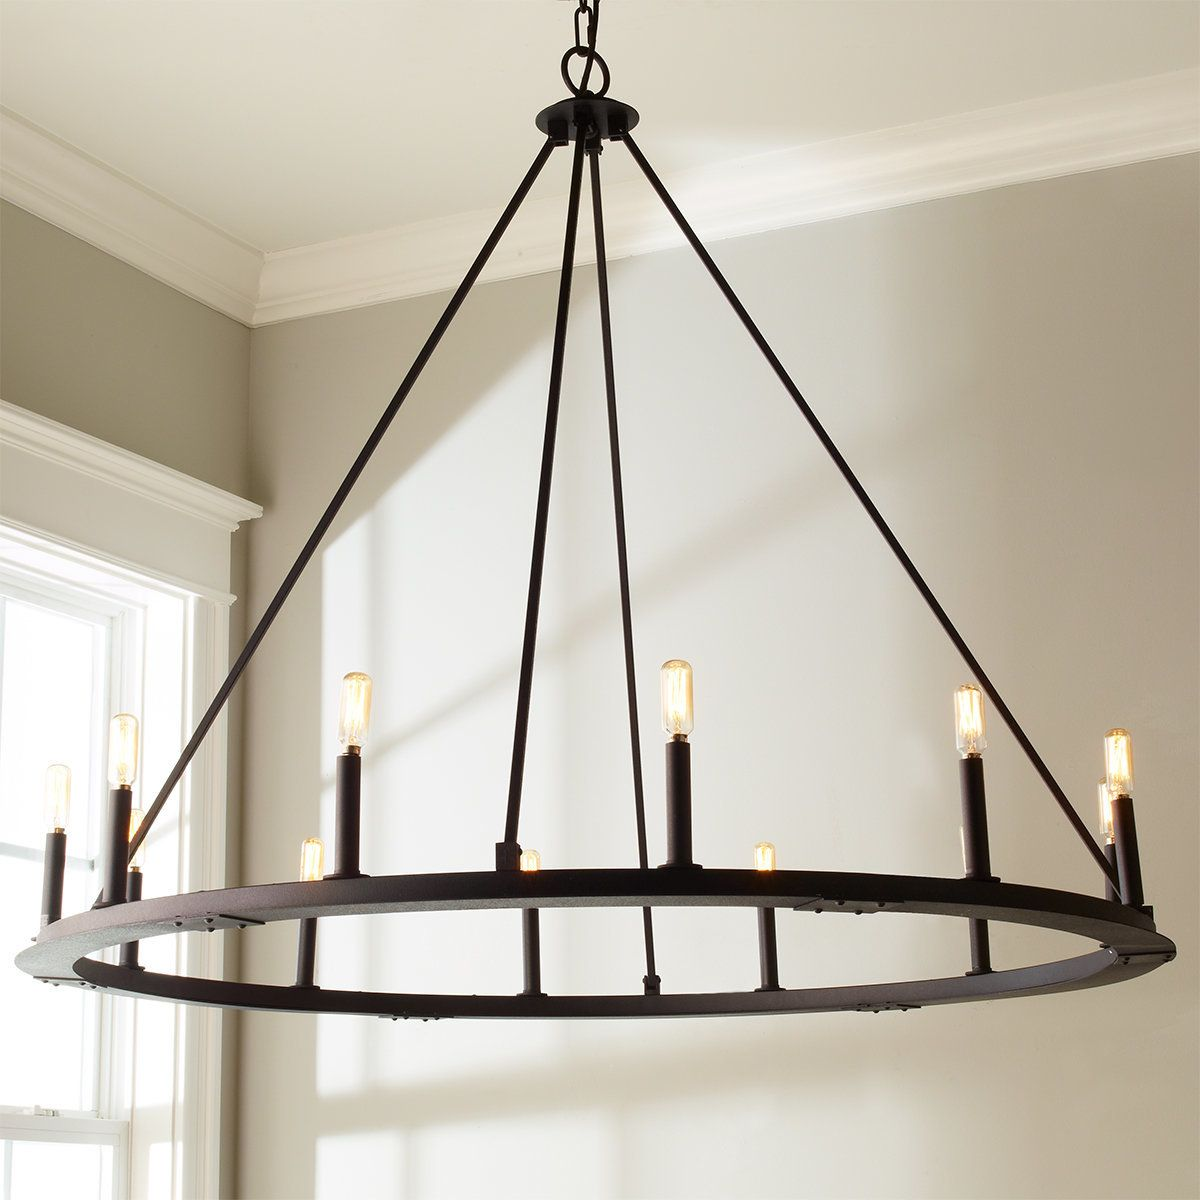 Check Out Minimalist Iron Ring Chandelier